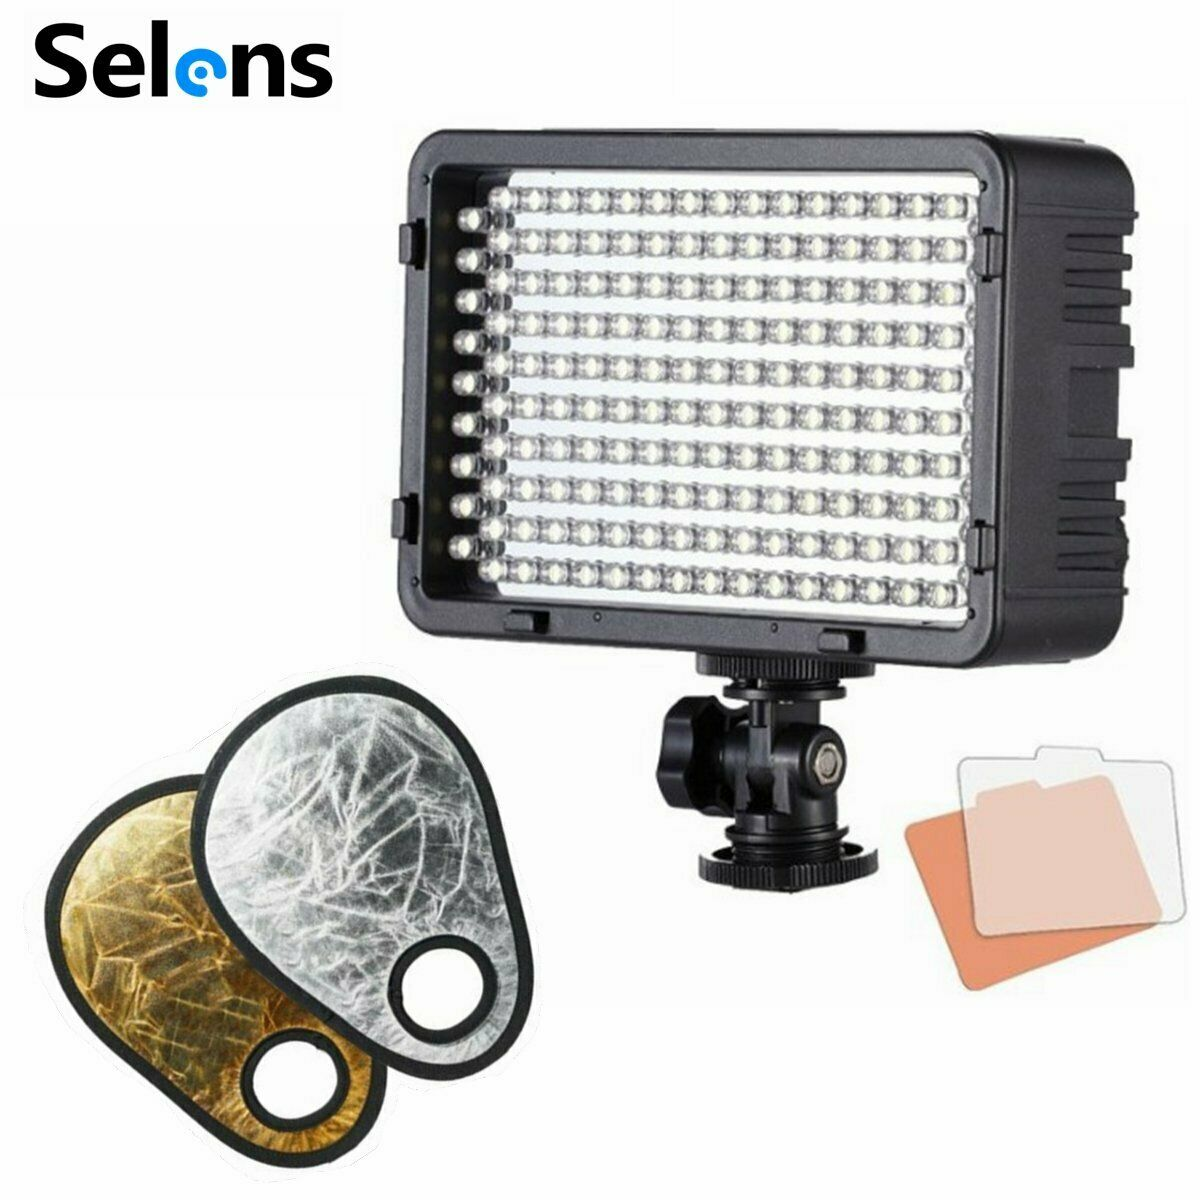 Dimmable LED Continuous Light Lamp + 2in1 Gold & Silver Reflector fr Photography